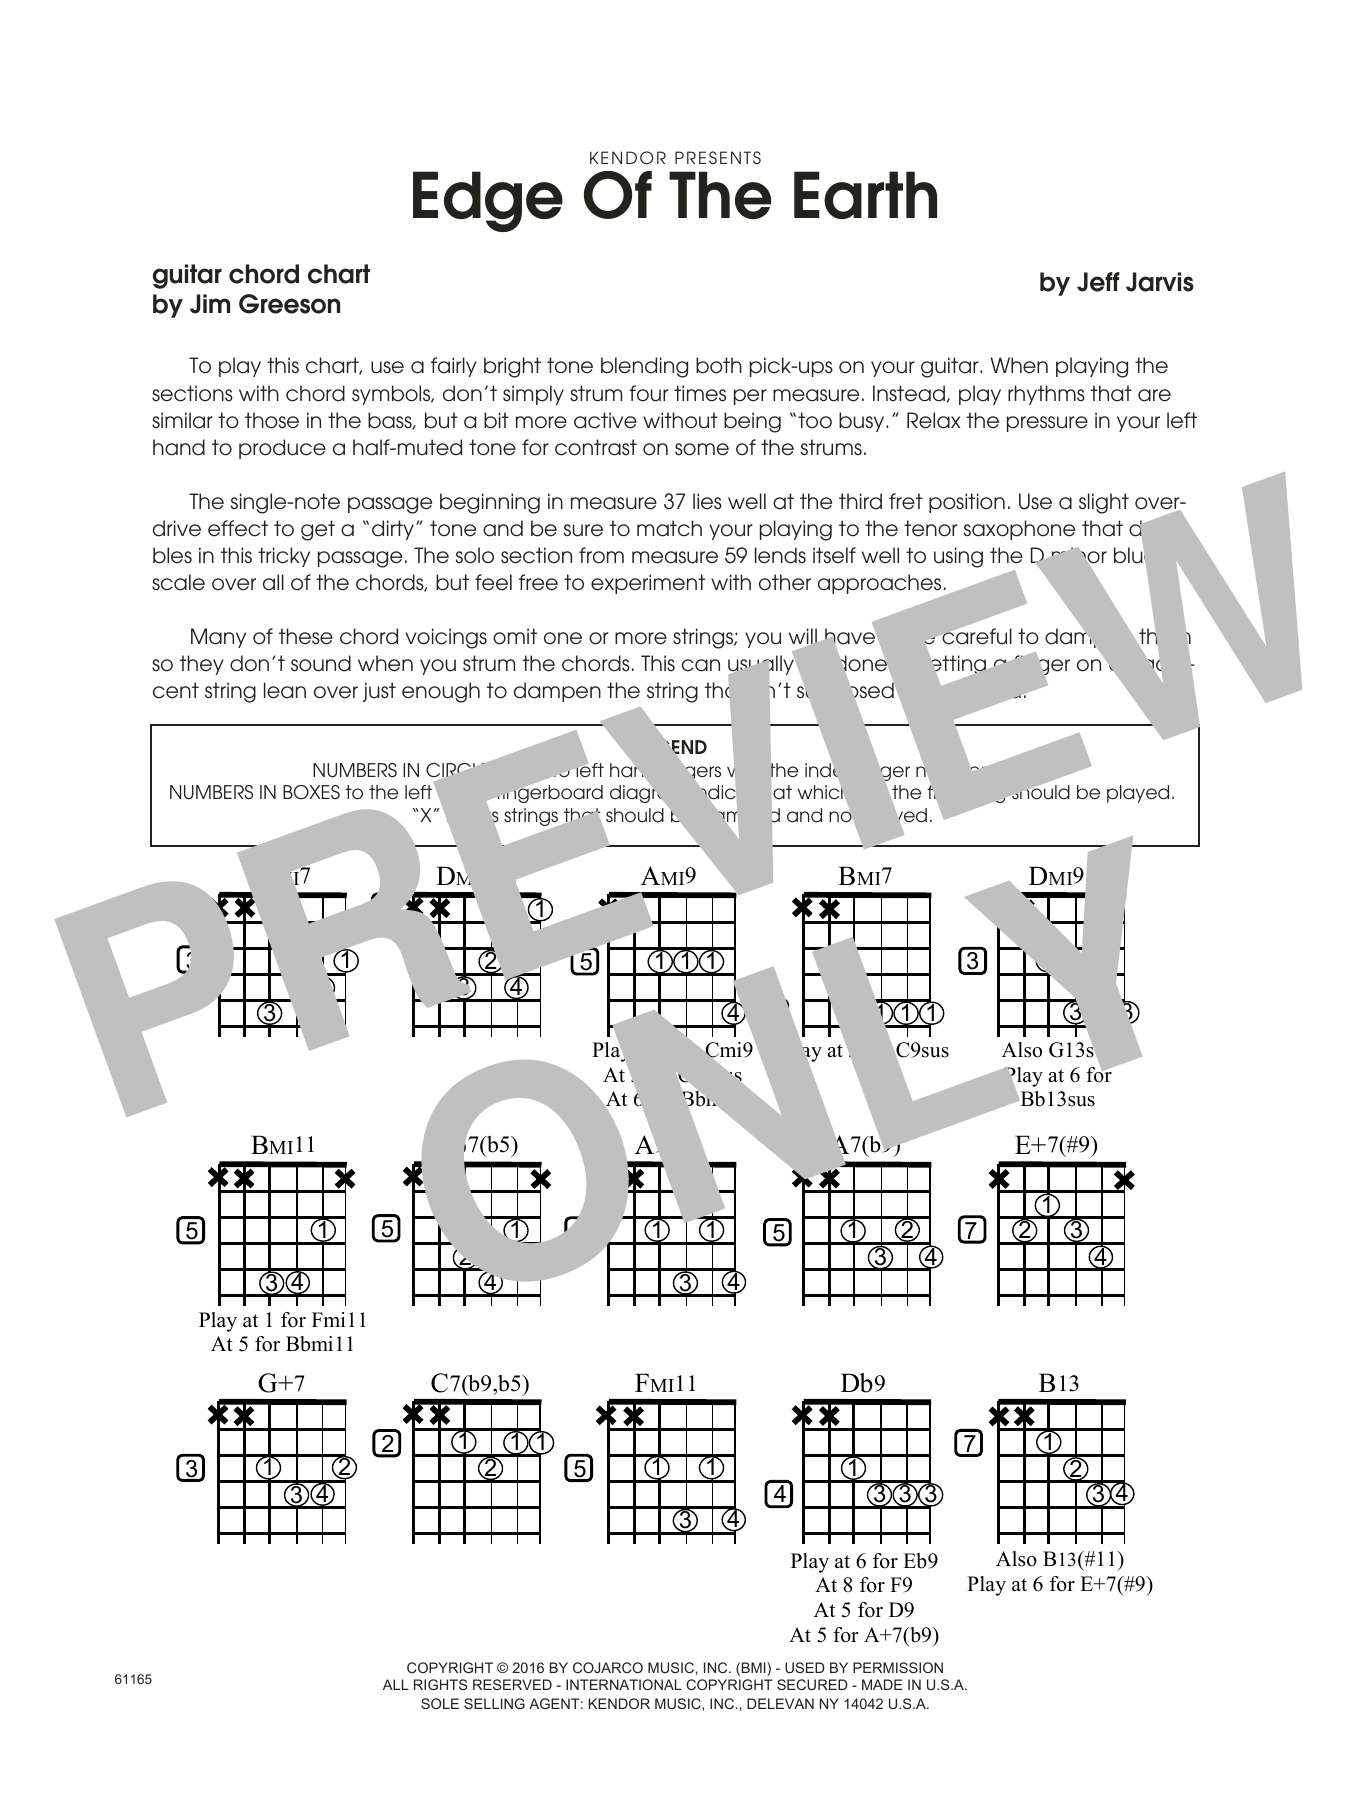 Edge Of The Earth - Guitar Chord Chart Sheet Music